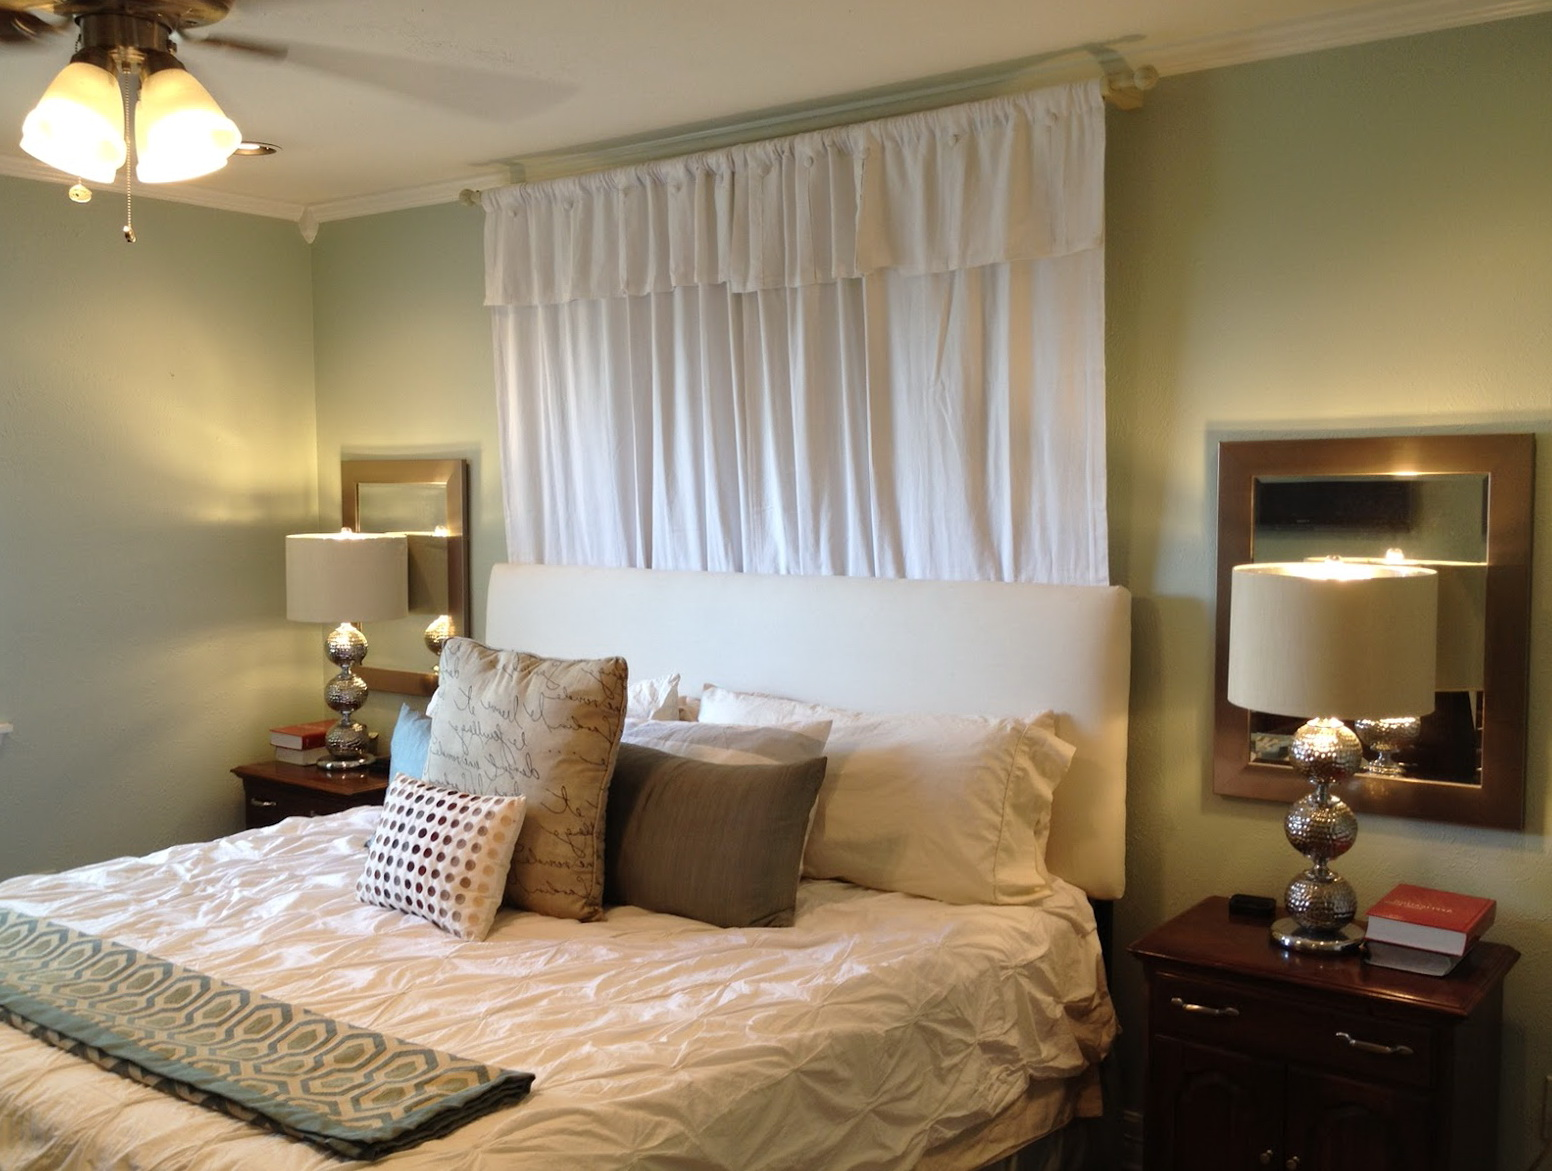 Bed With Curtains Behind